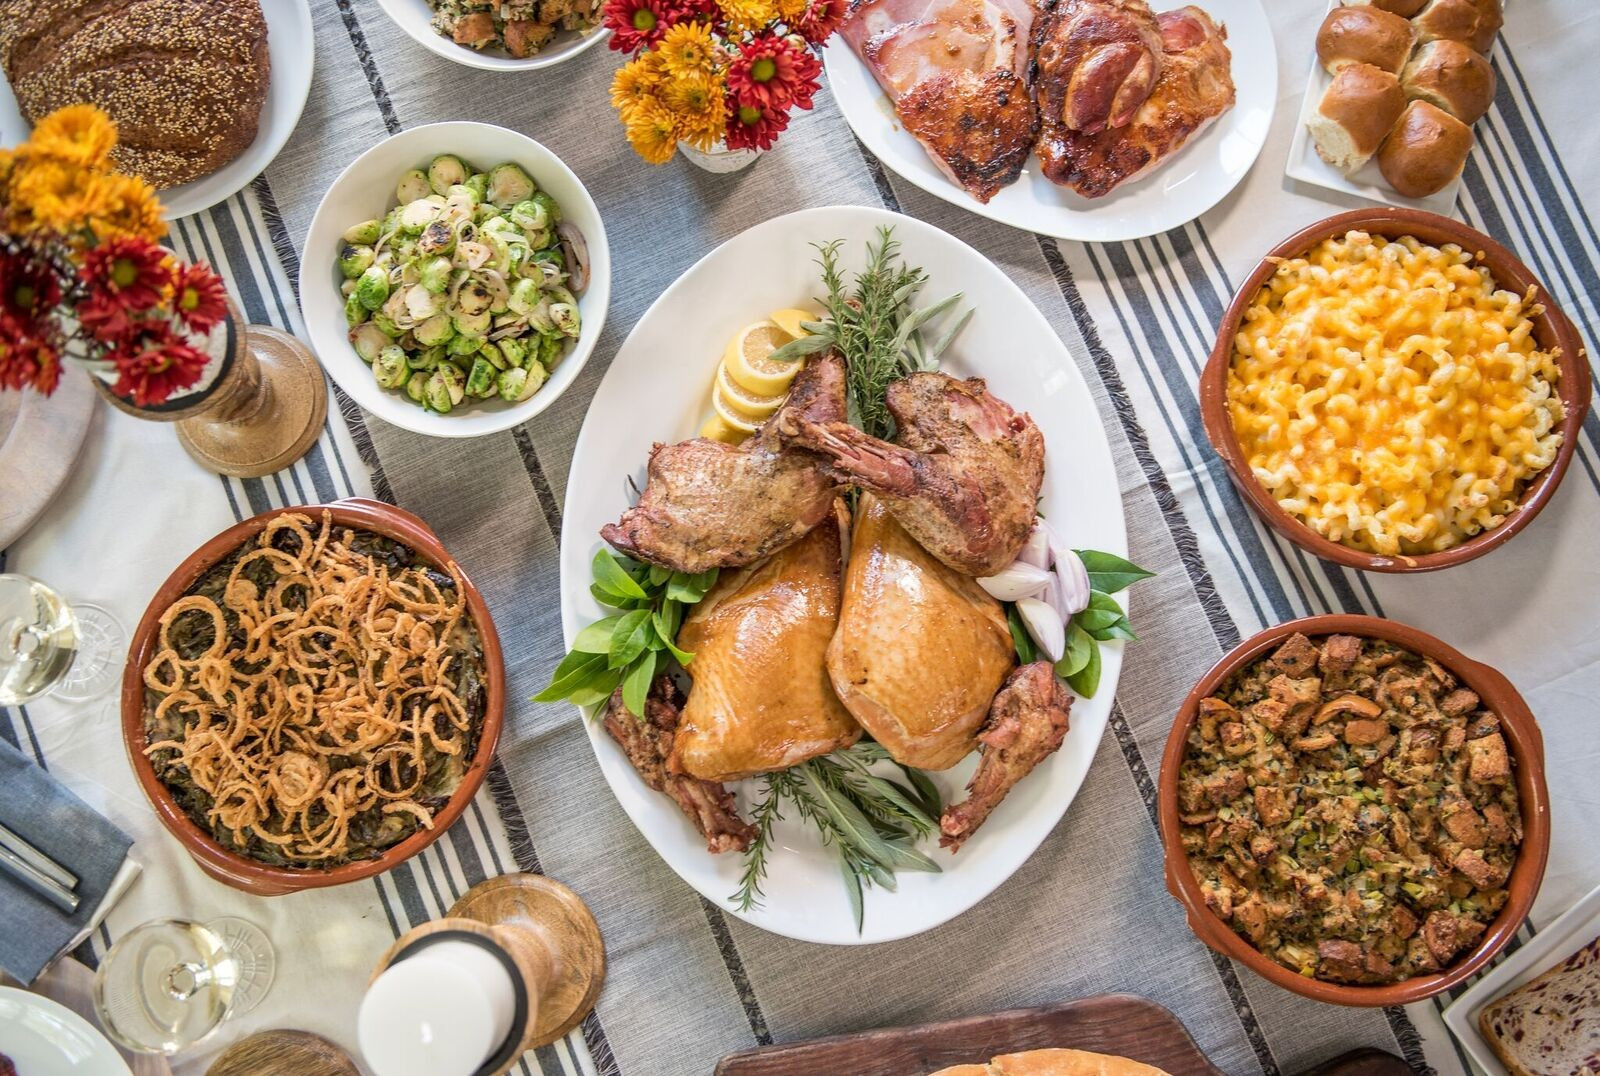 Thanksgiving Dinner Catering  Houston s Best Thanksgiving Day Catering Options 2017